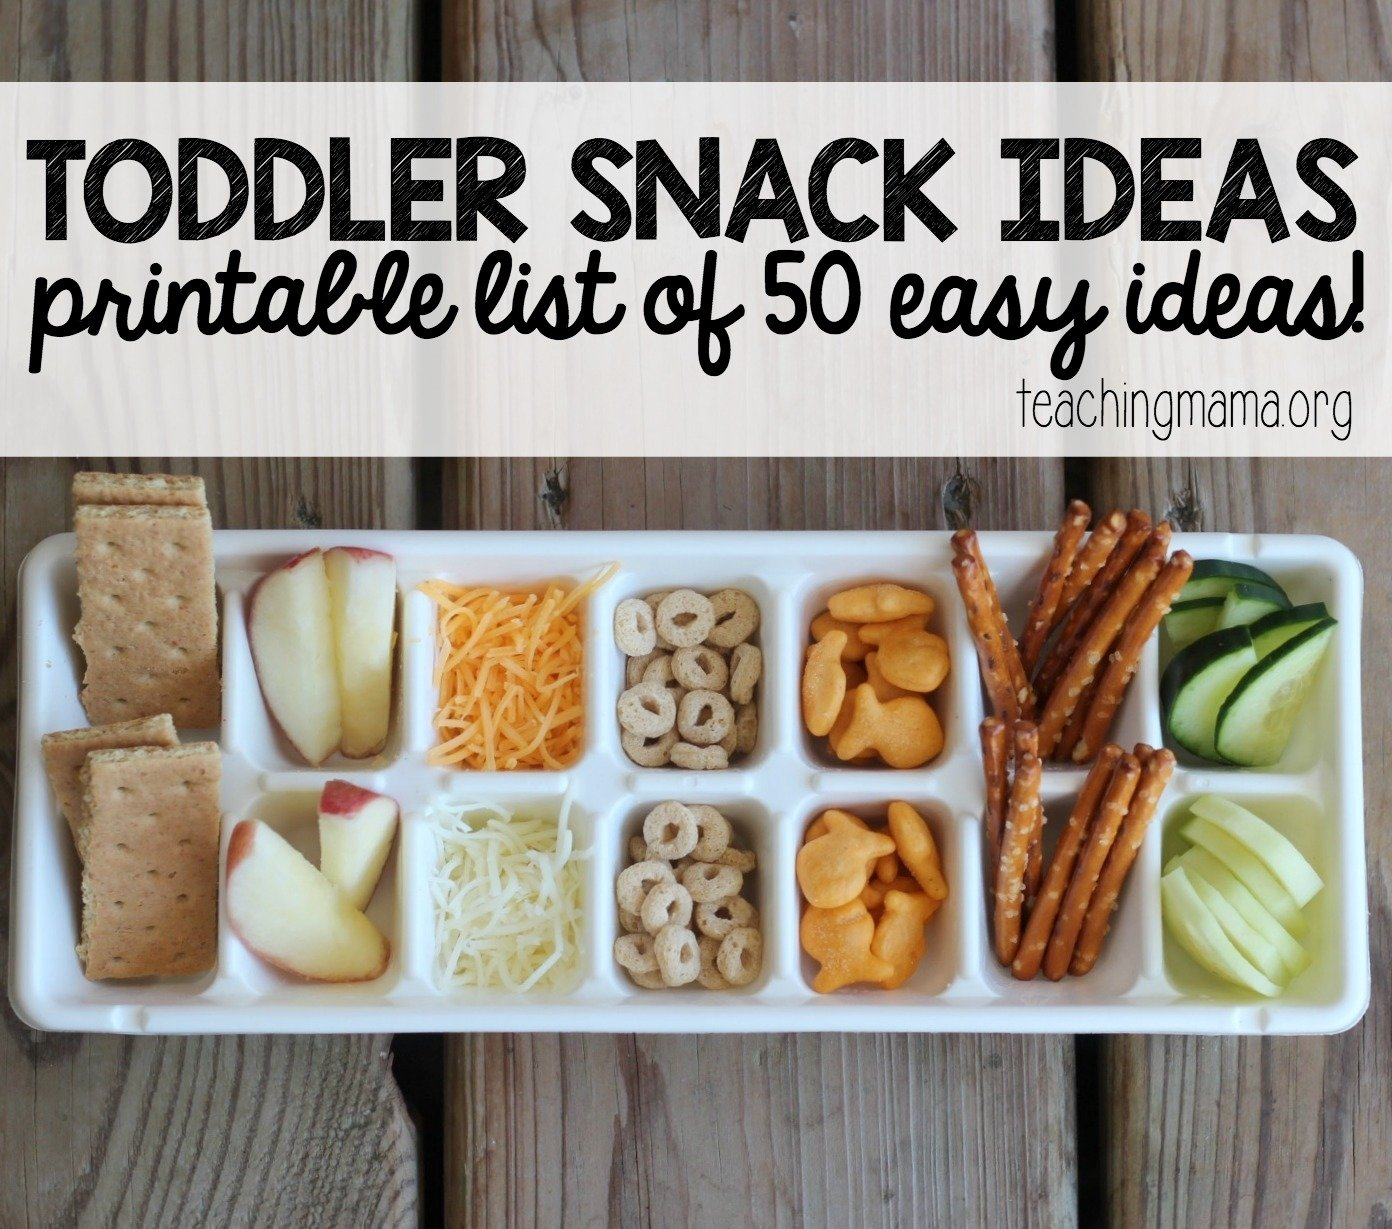 10 Famous Easy Snack Ideas For Kids Toddler 1